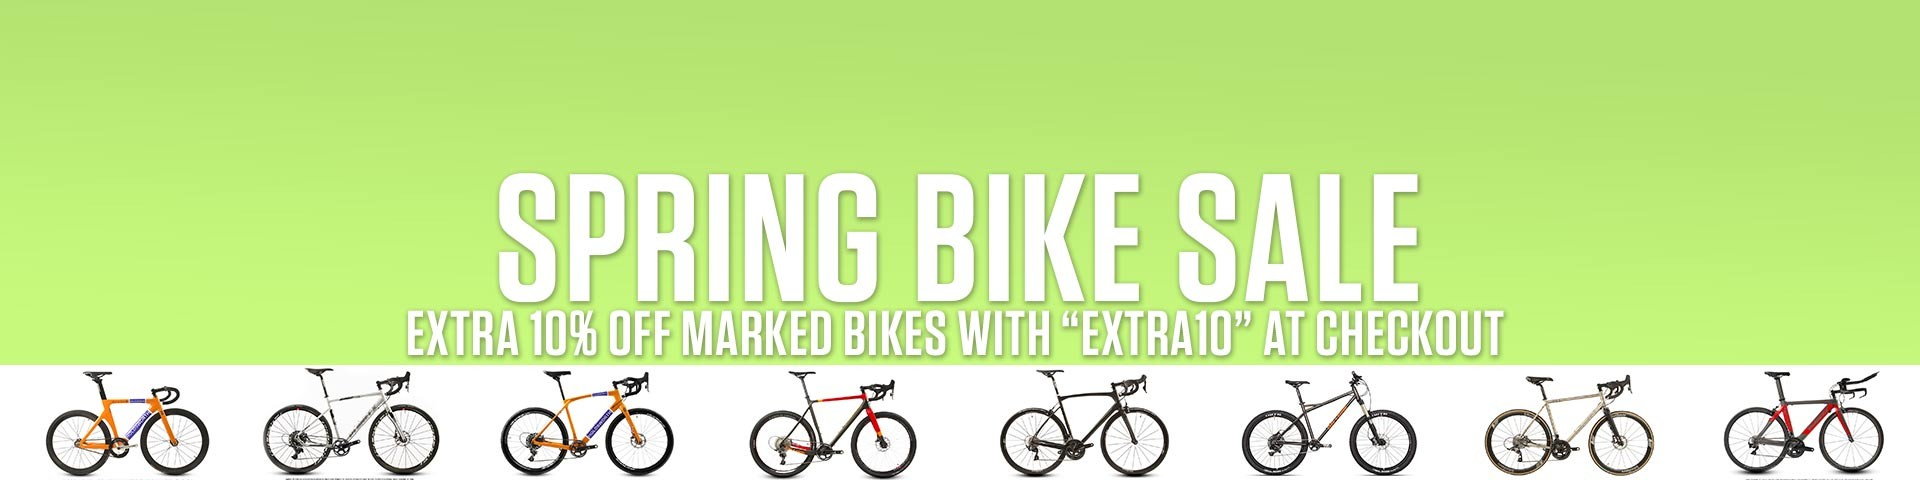 Extra 10% off Marked Bikes